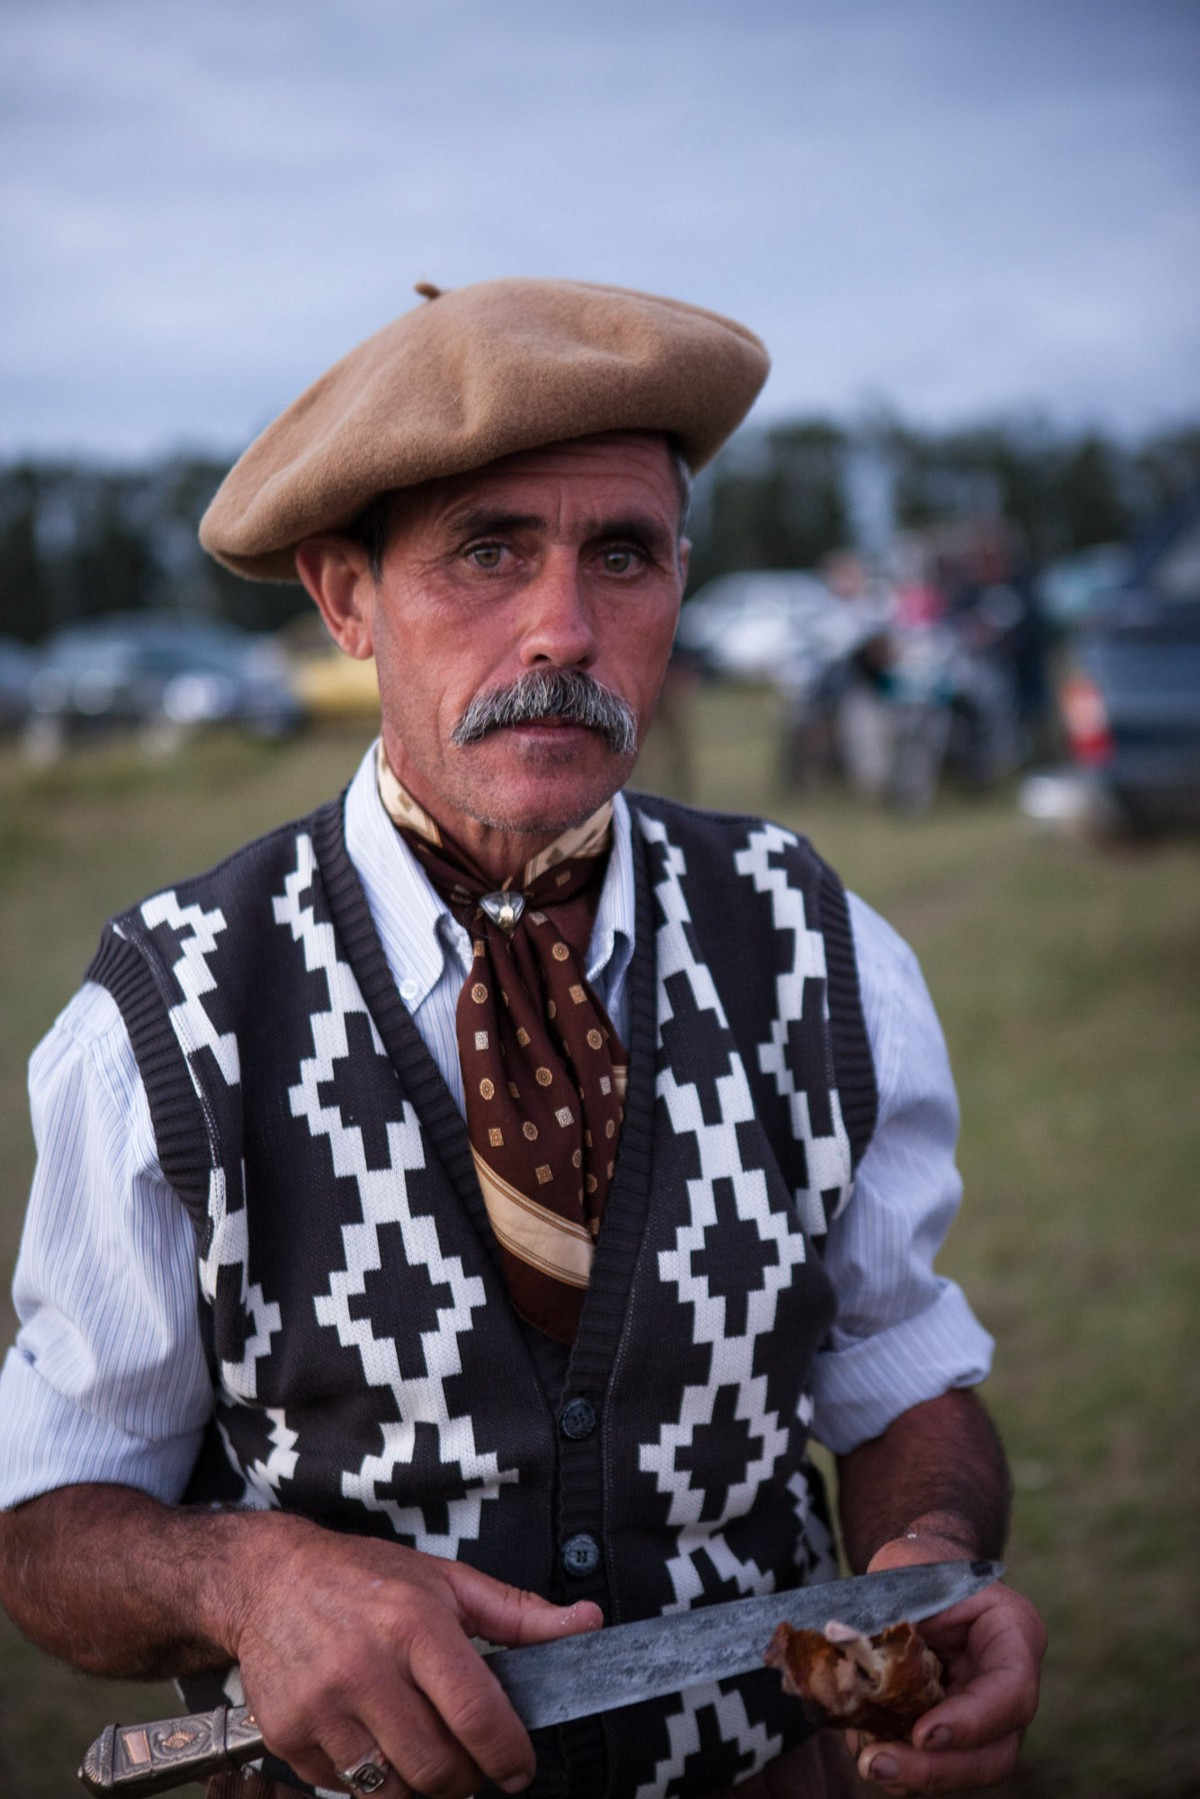 The facón is a utility knife used by gauchos to castrate livestock, carve hunks of meat for roasting over roaring fires, and occasionally to settle brawls. ©James Fisher 2017 All Rights Reserved